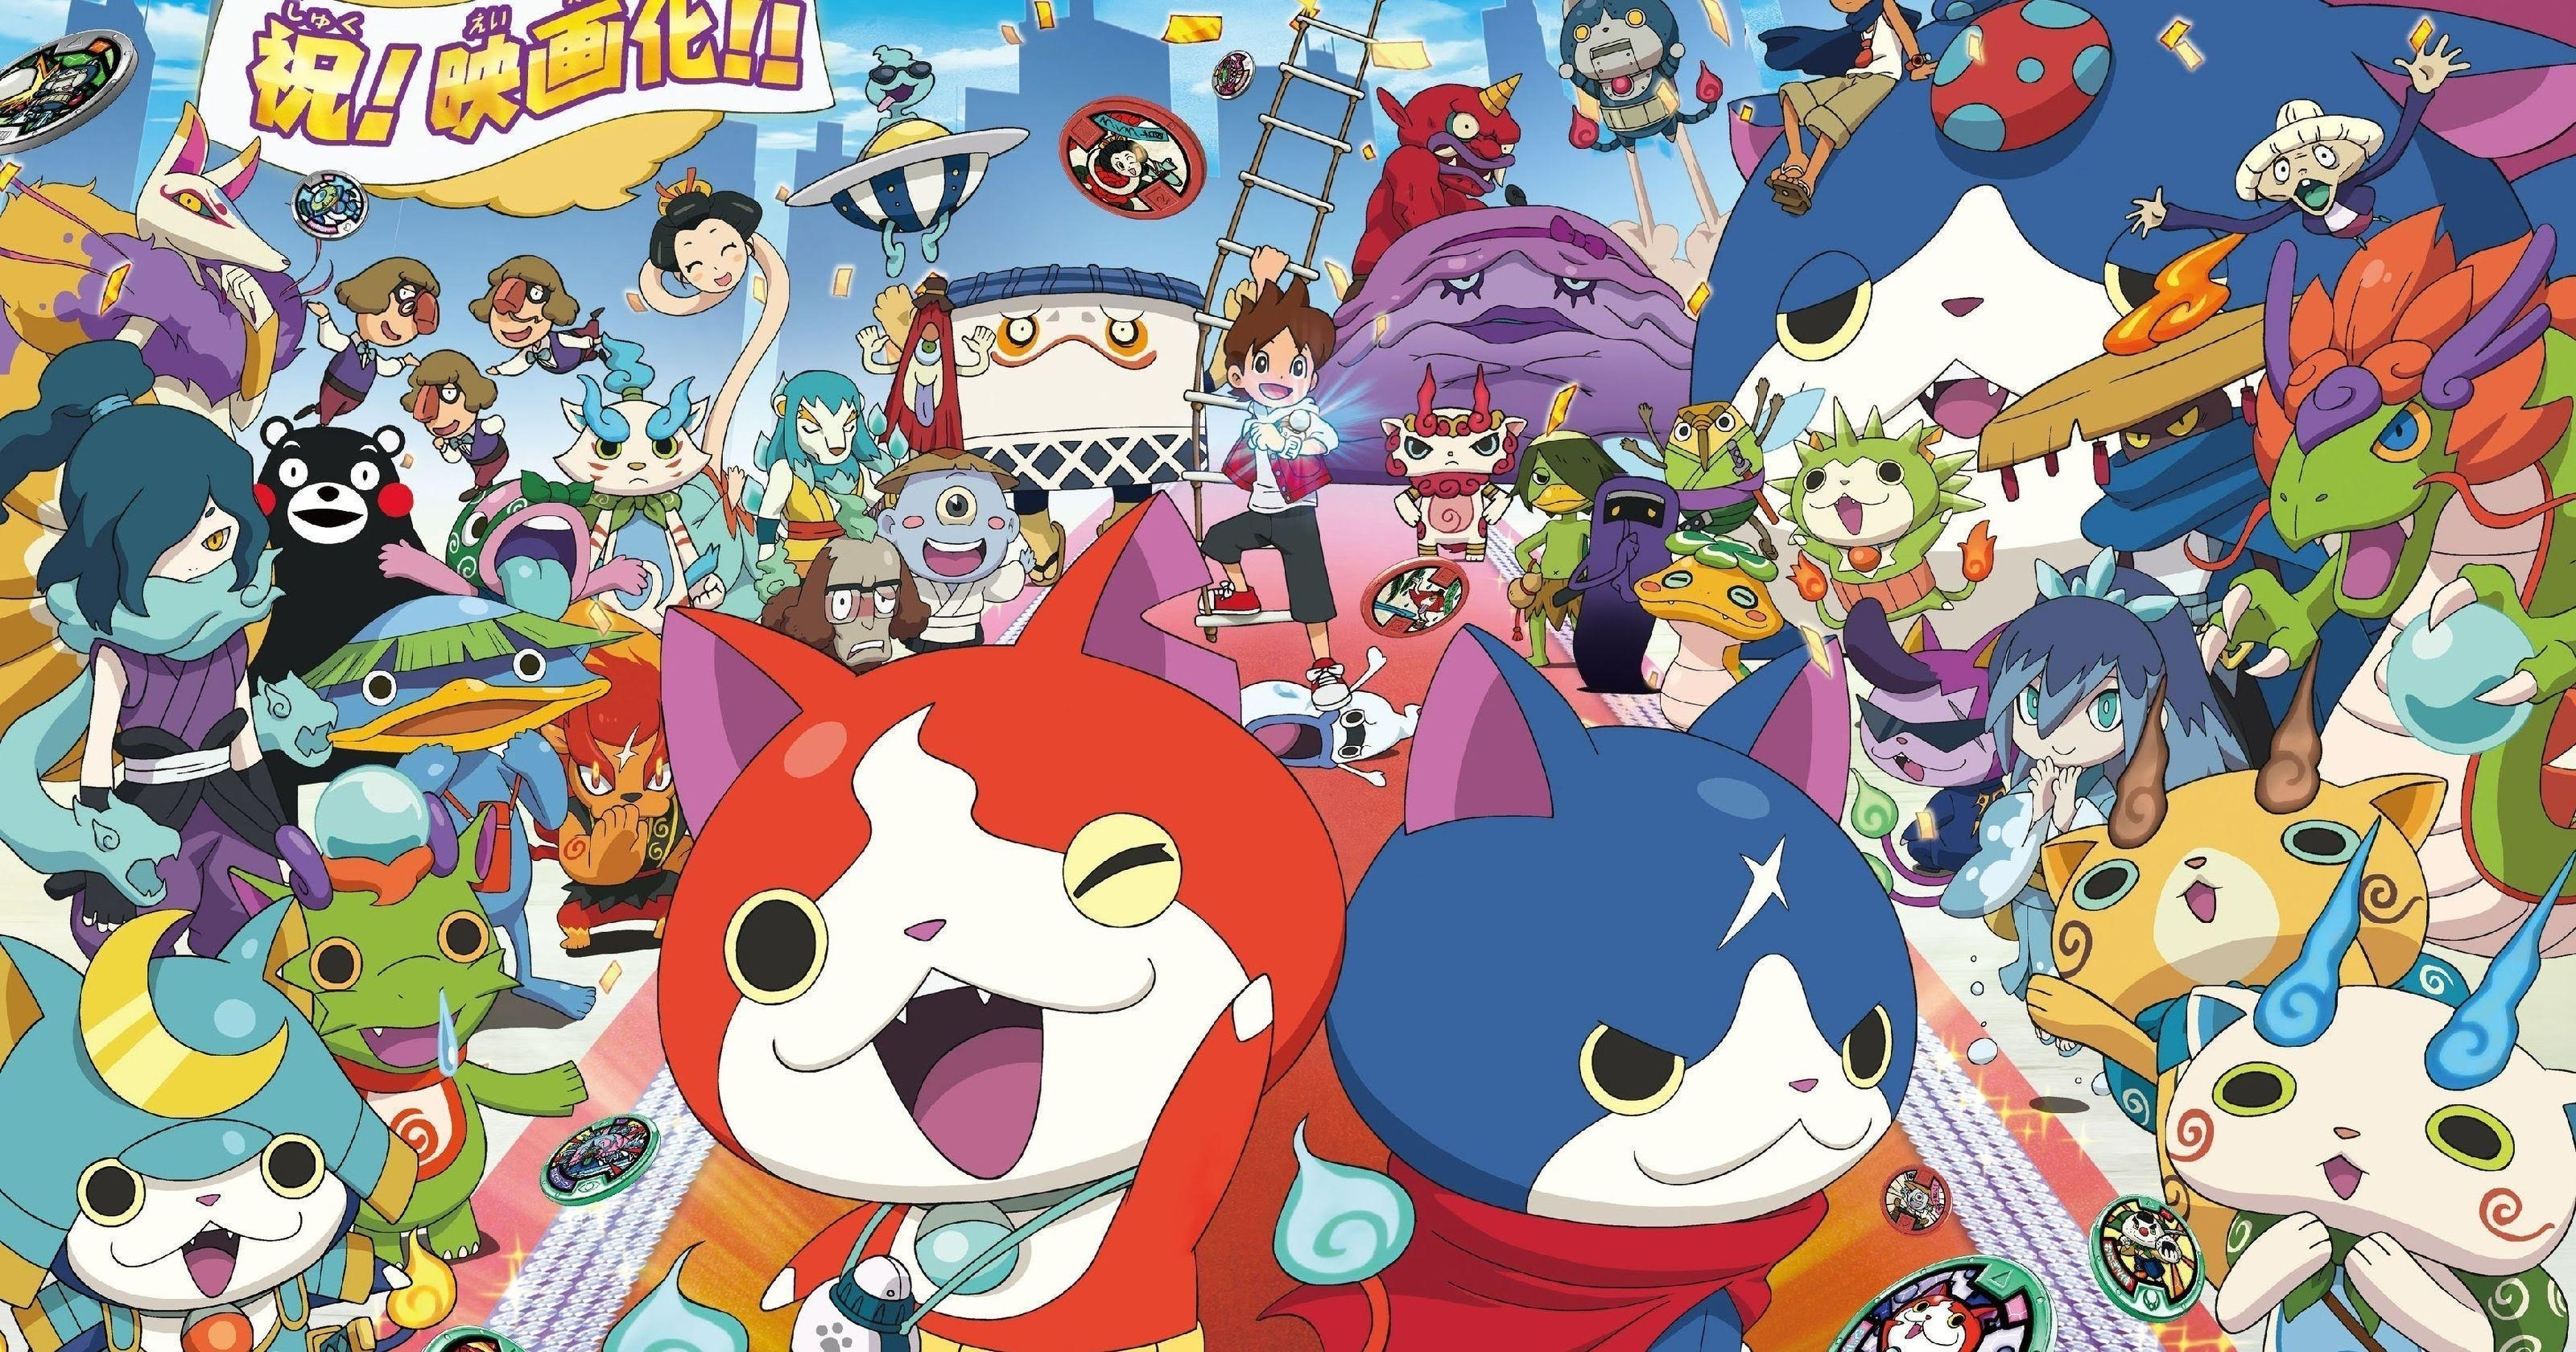 yo-kai watch wallpapers - wallpaper cave